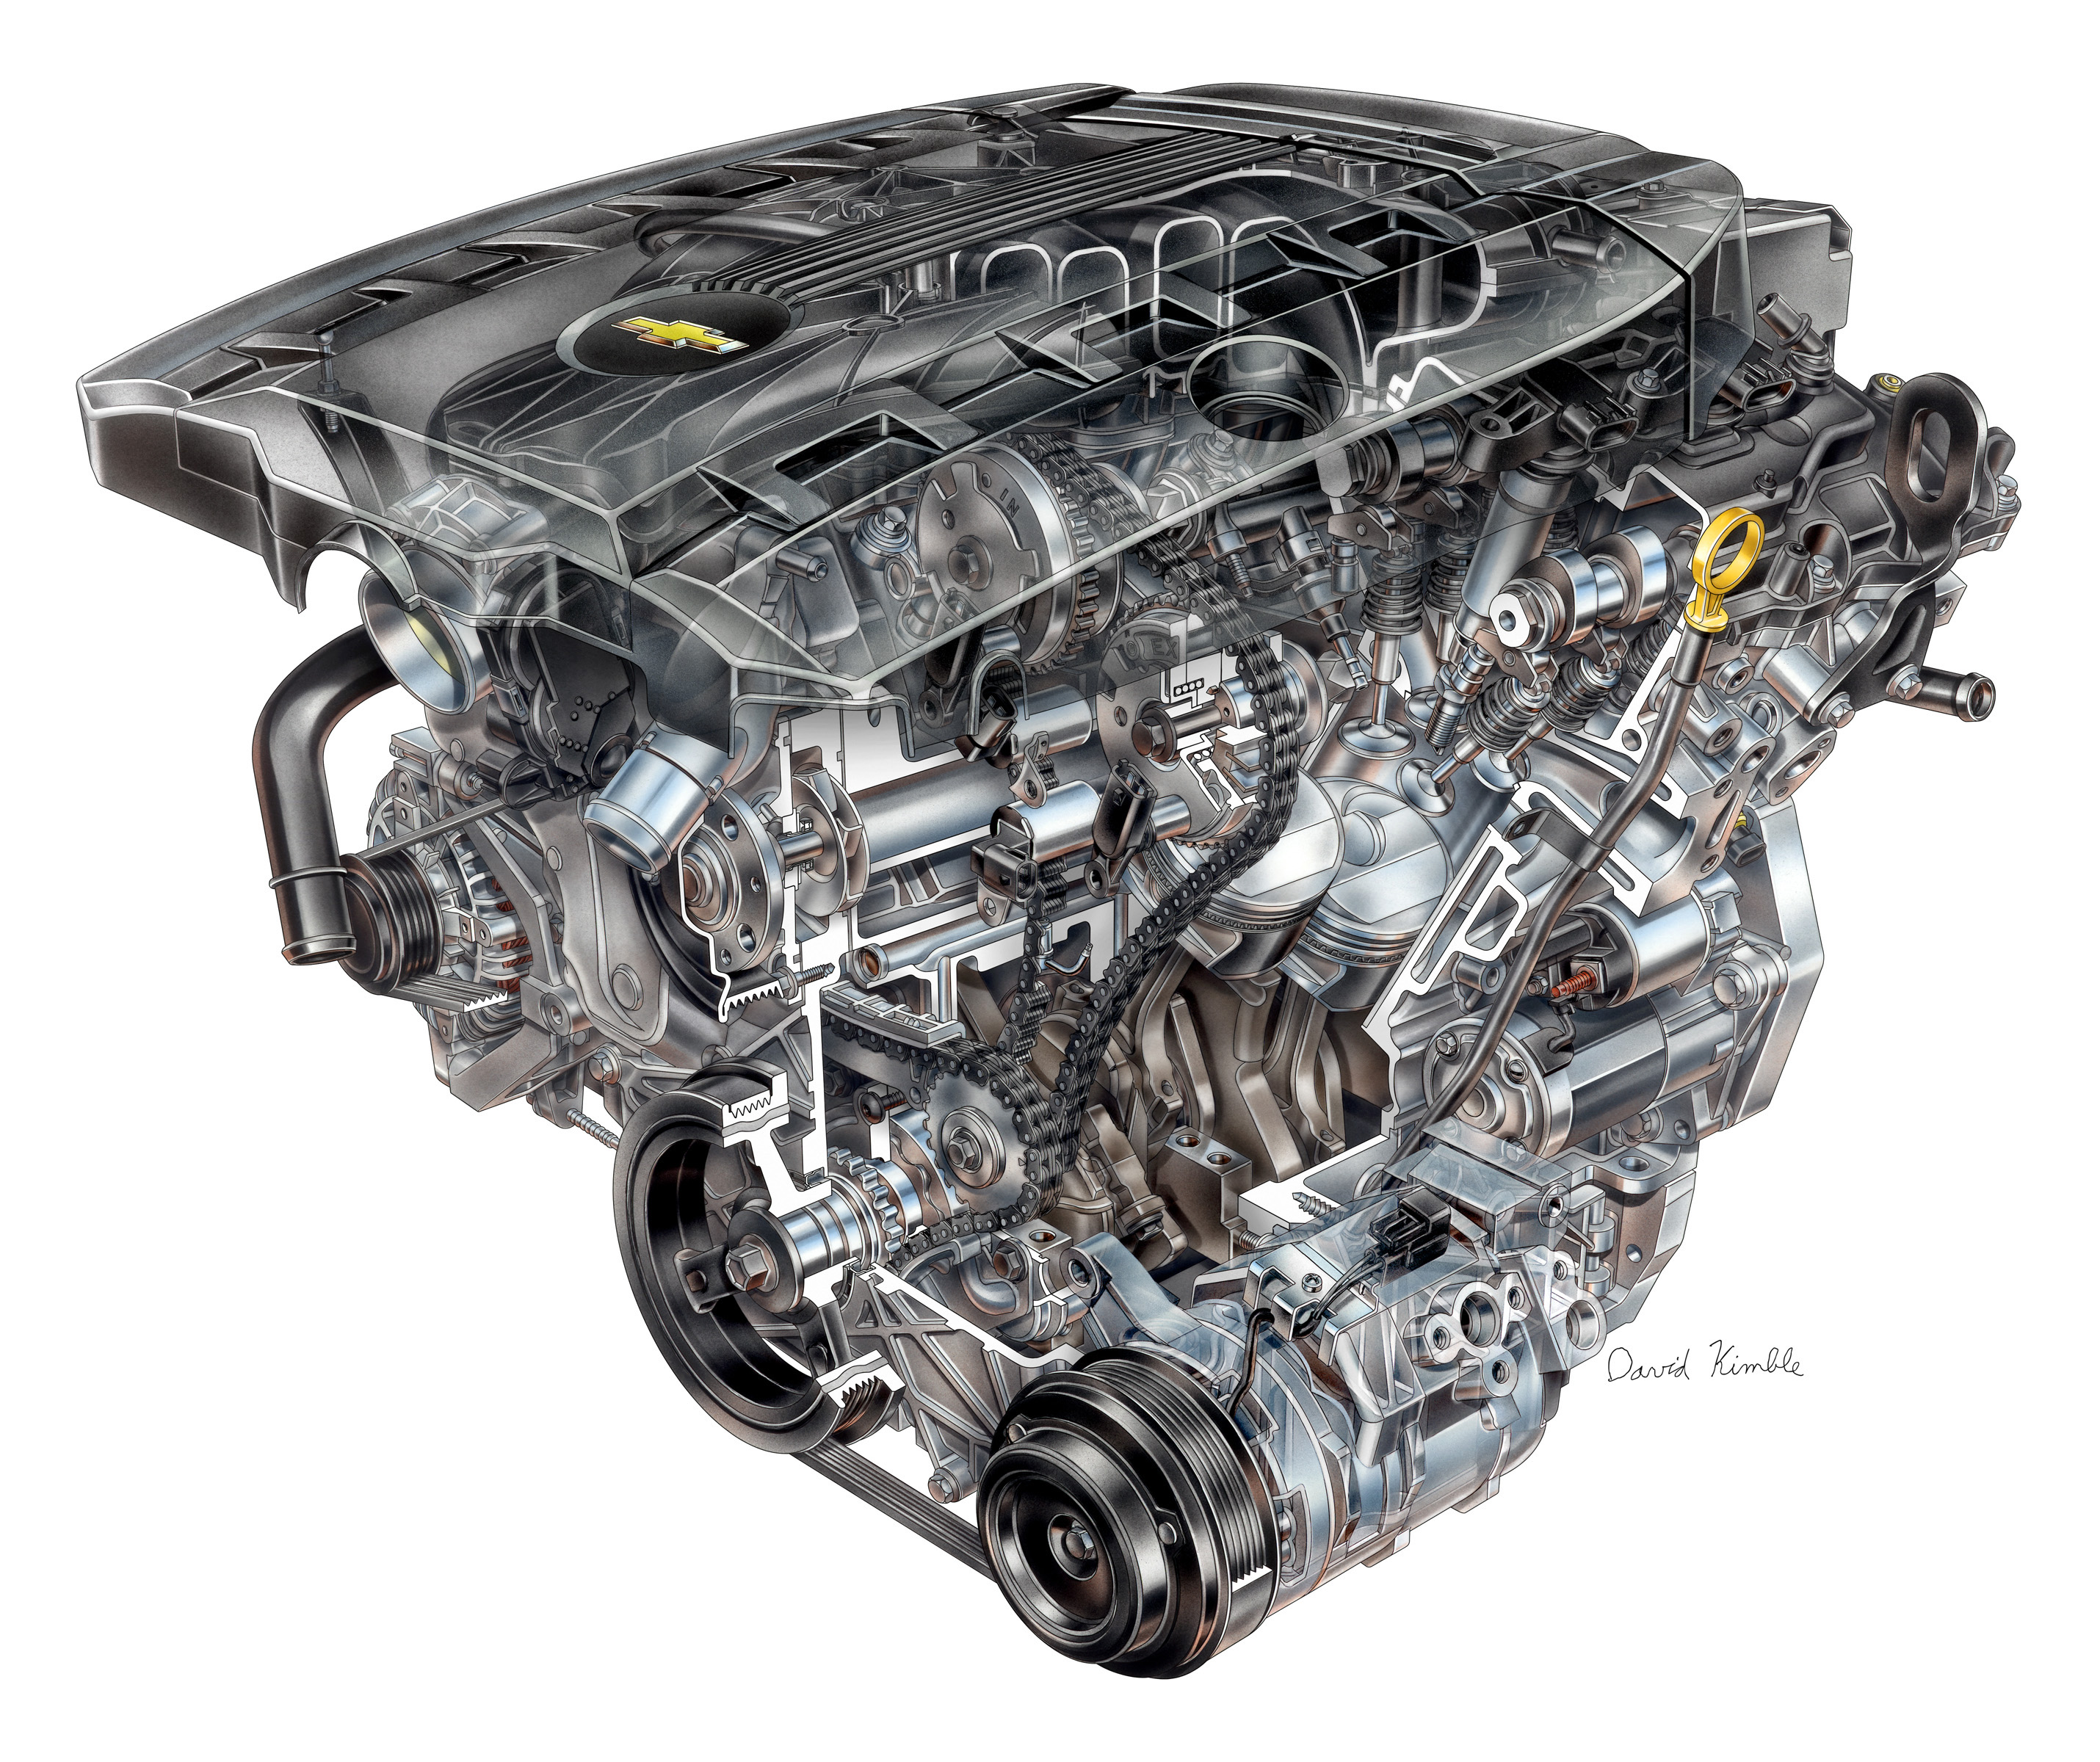 Buick V8 Engines: Cartype